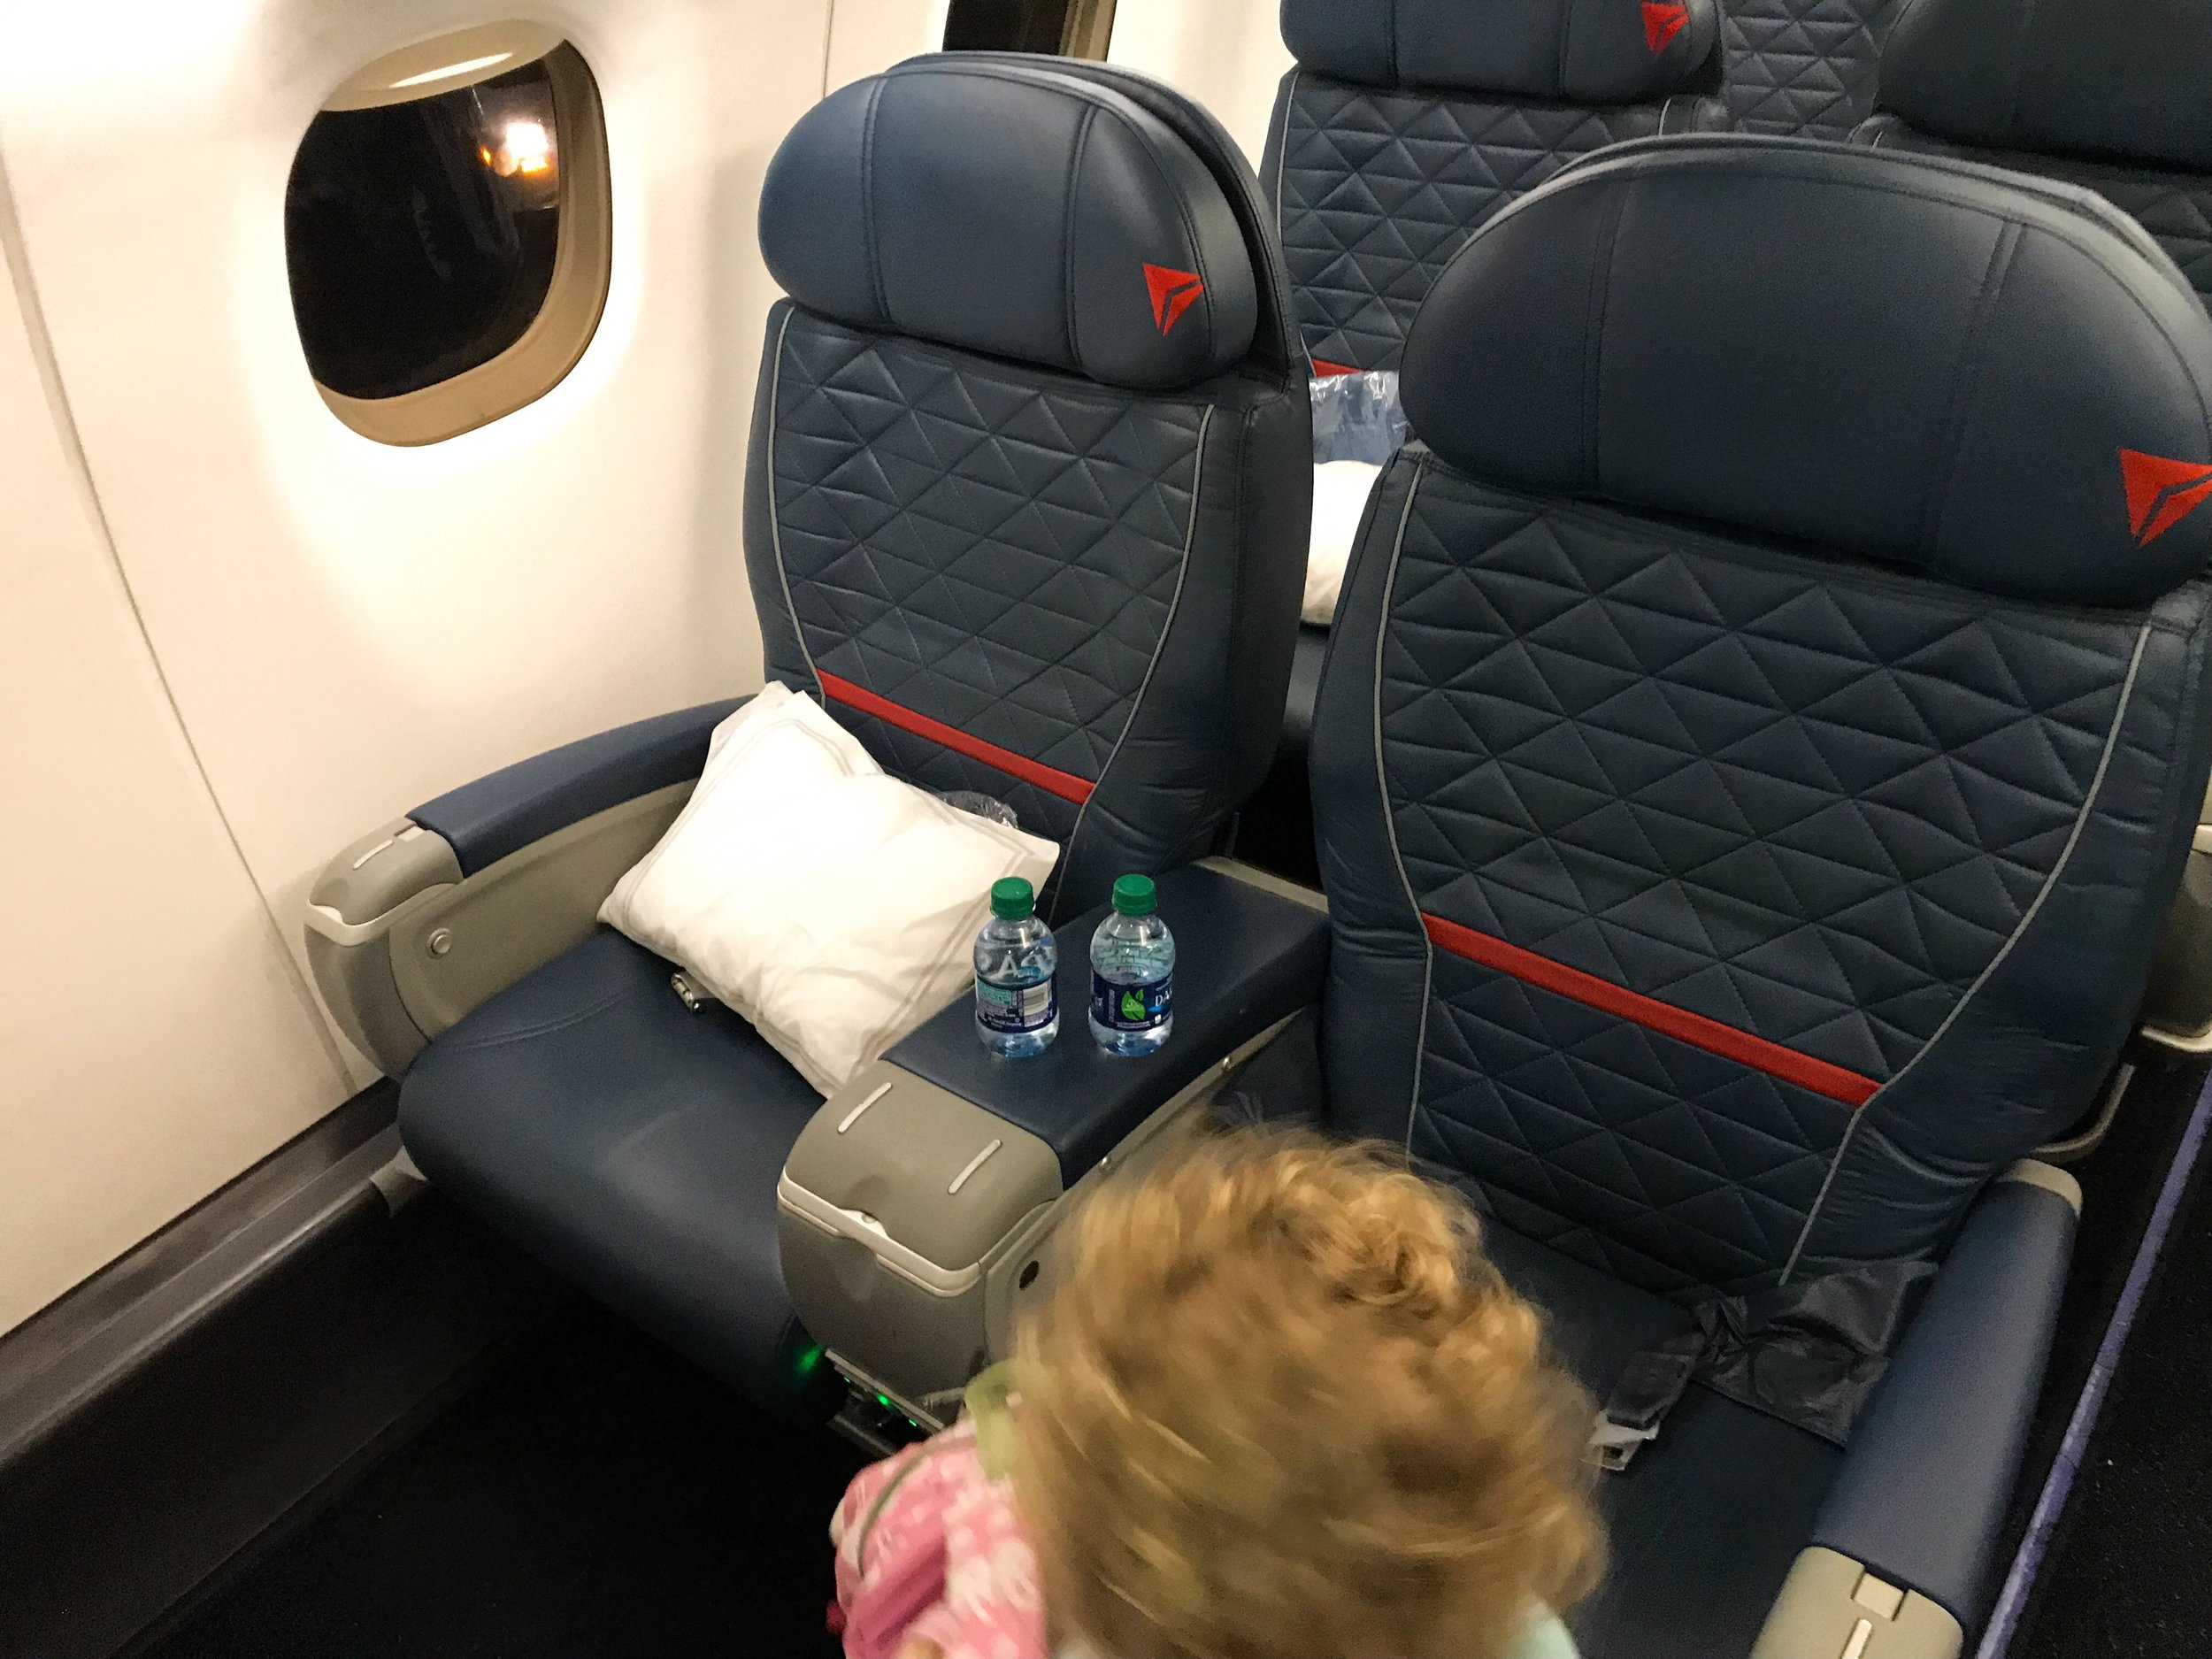 Delta boards families traveling with small children right after passengers needing extra assistance. This is usually reserved for families with children under two and with strollers, but the gate agents graciously told me we could board with this group (I wasn't even going to try).